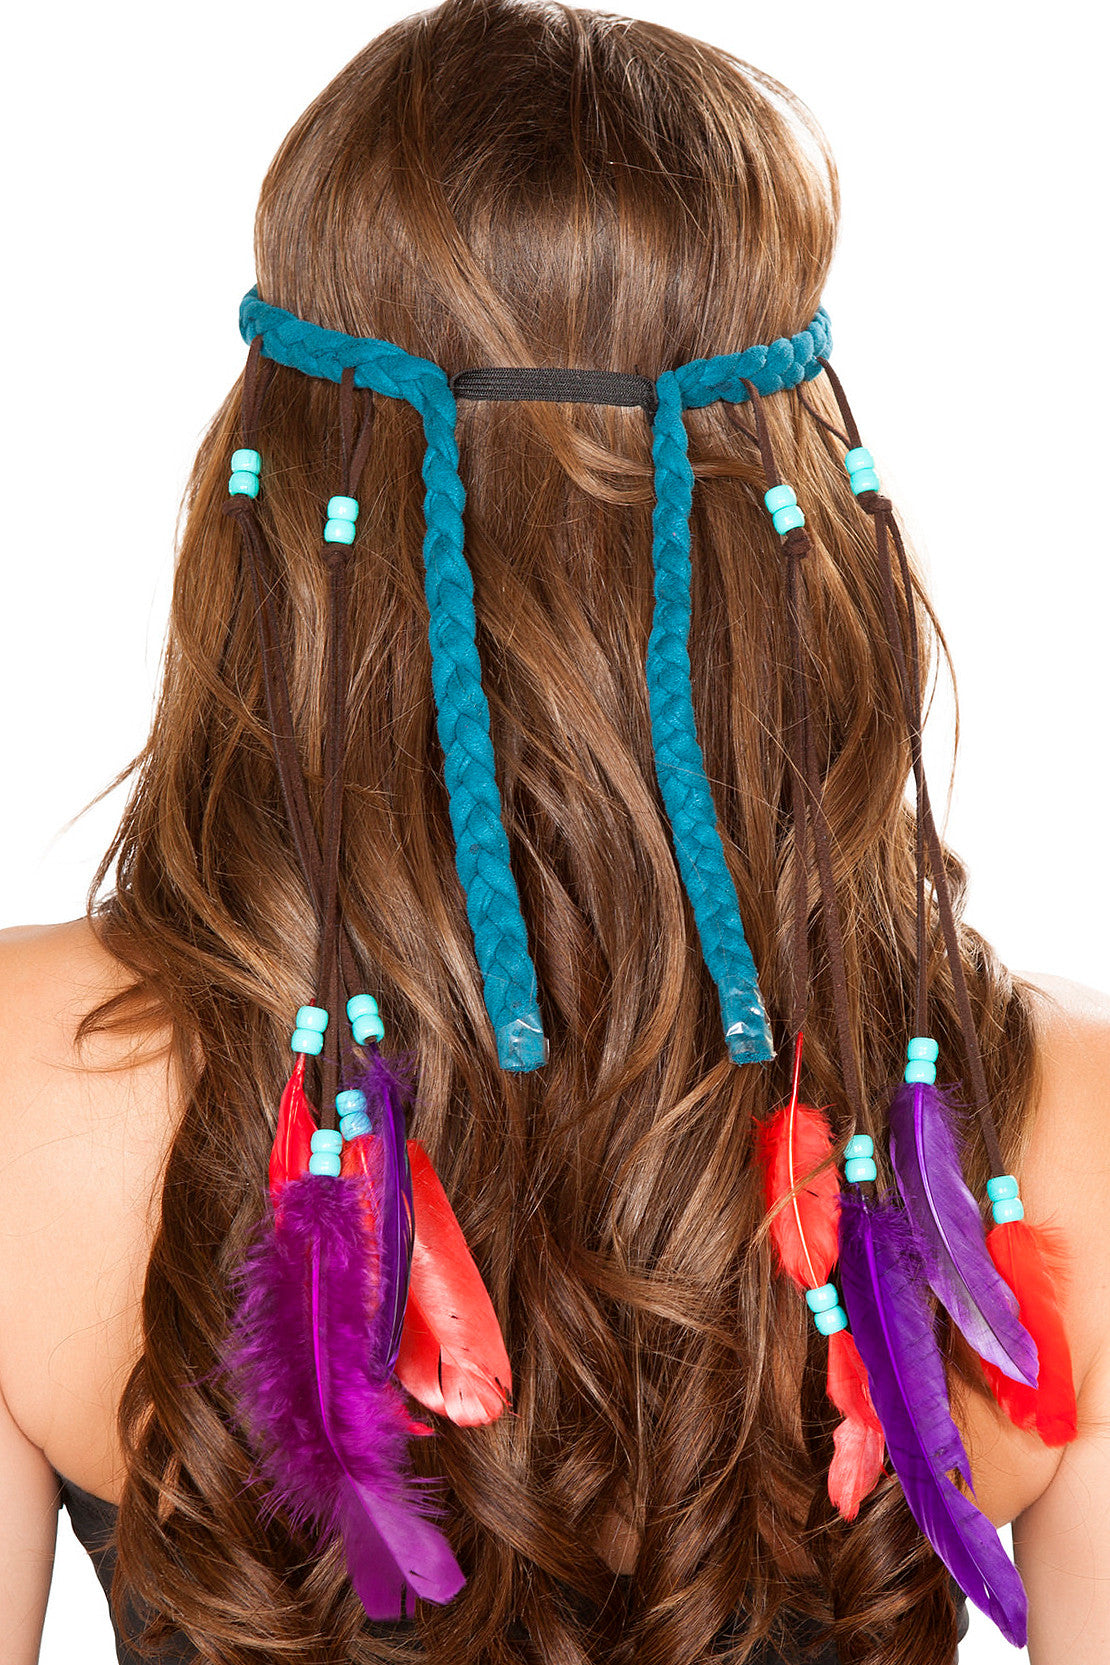 Braided Turquoise Headband